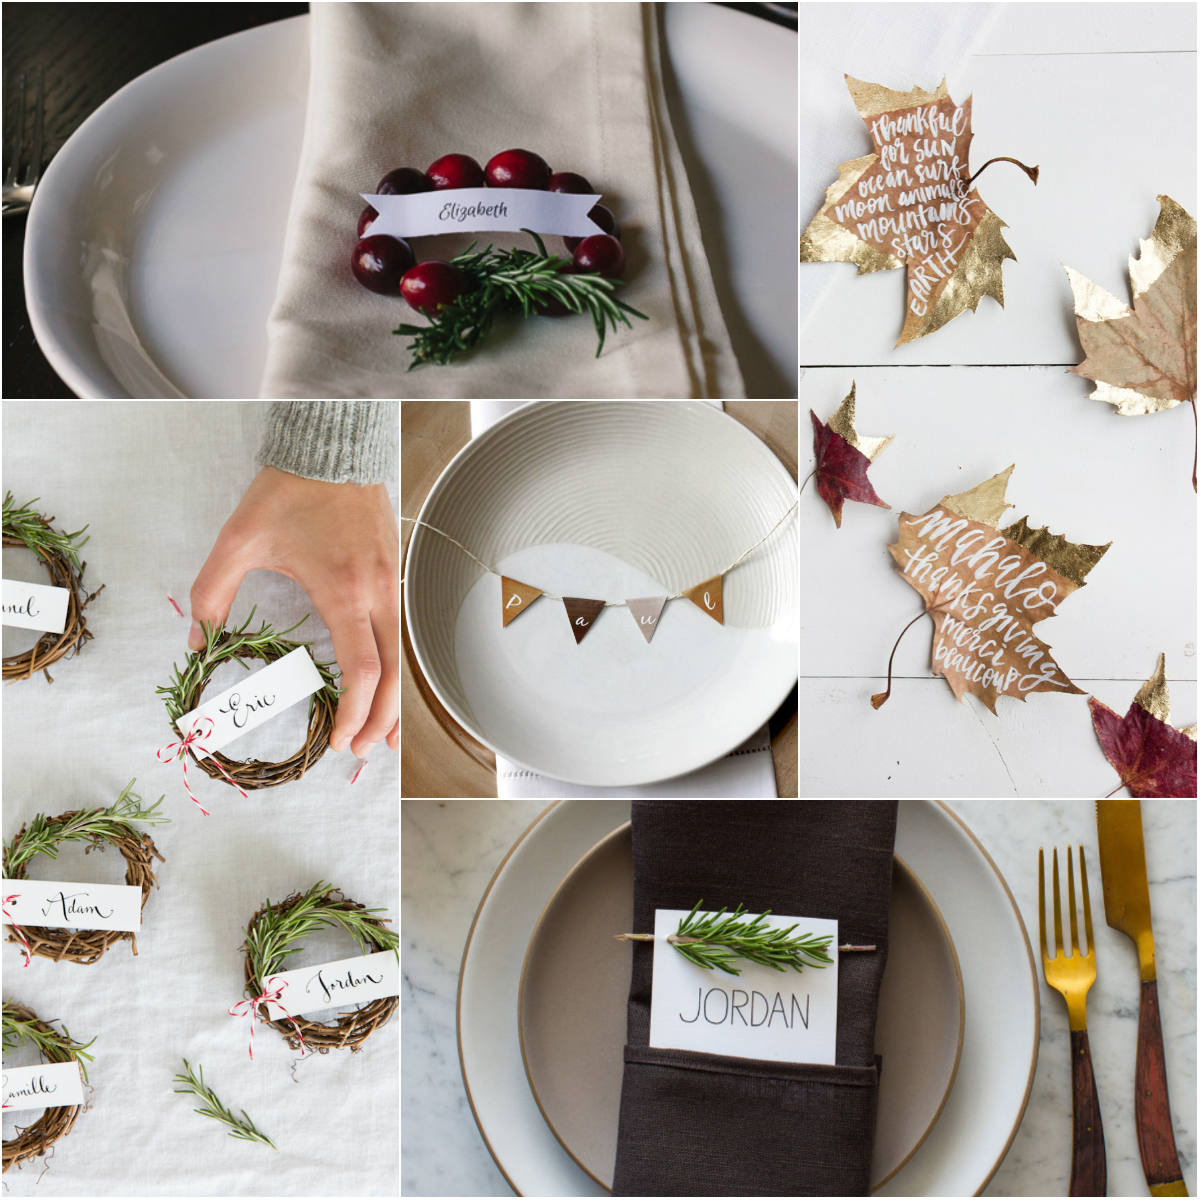 6 Easy Thanksgiving and Christmas Place Setting Ideas